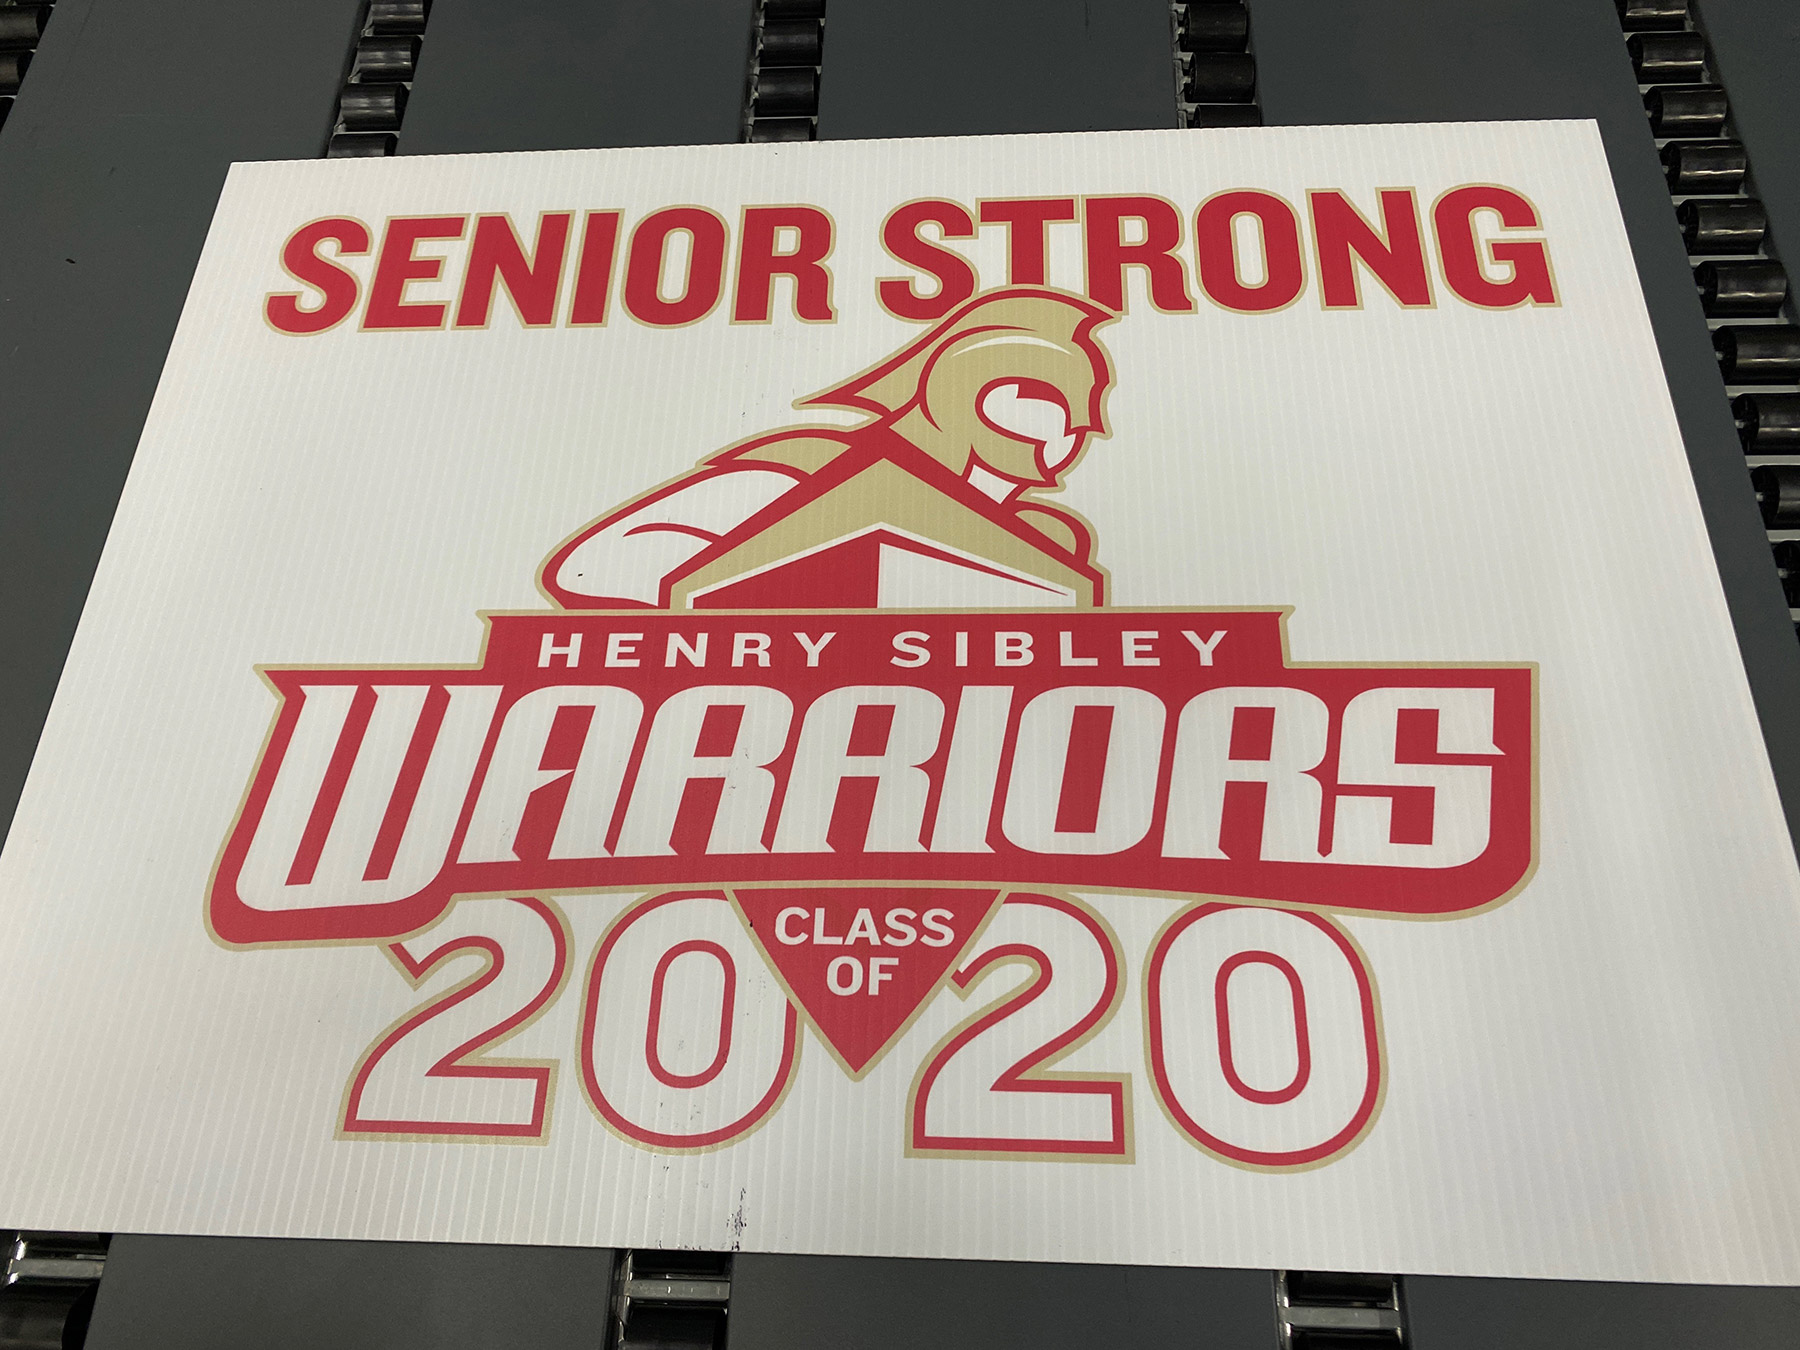 Senior Strong Henry Sibley Warriors Class of 2020 yard sign